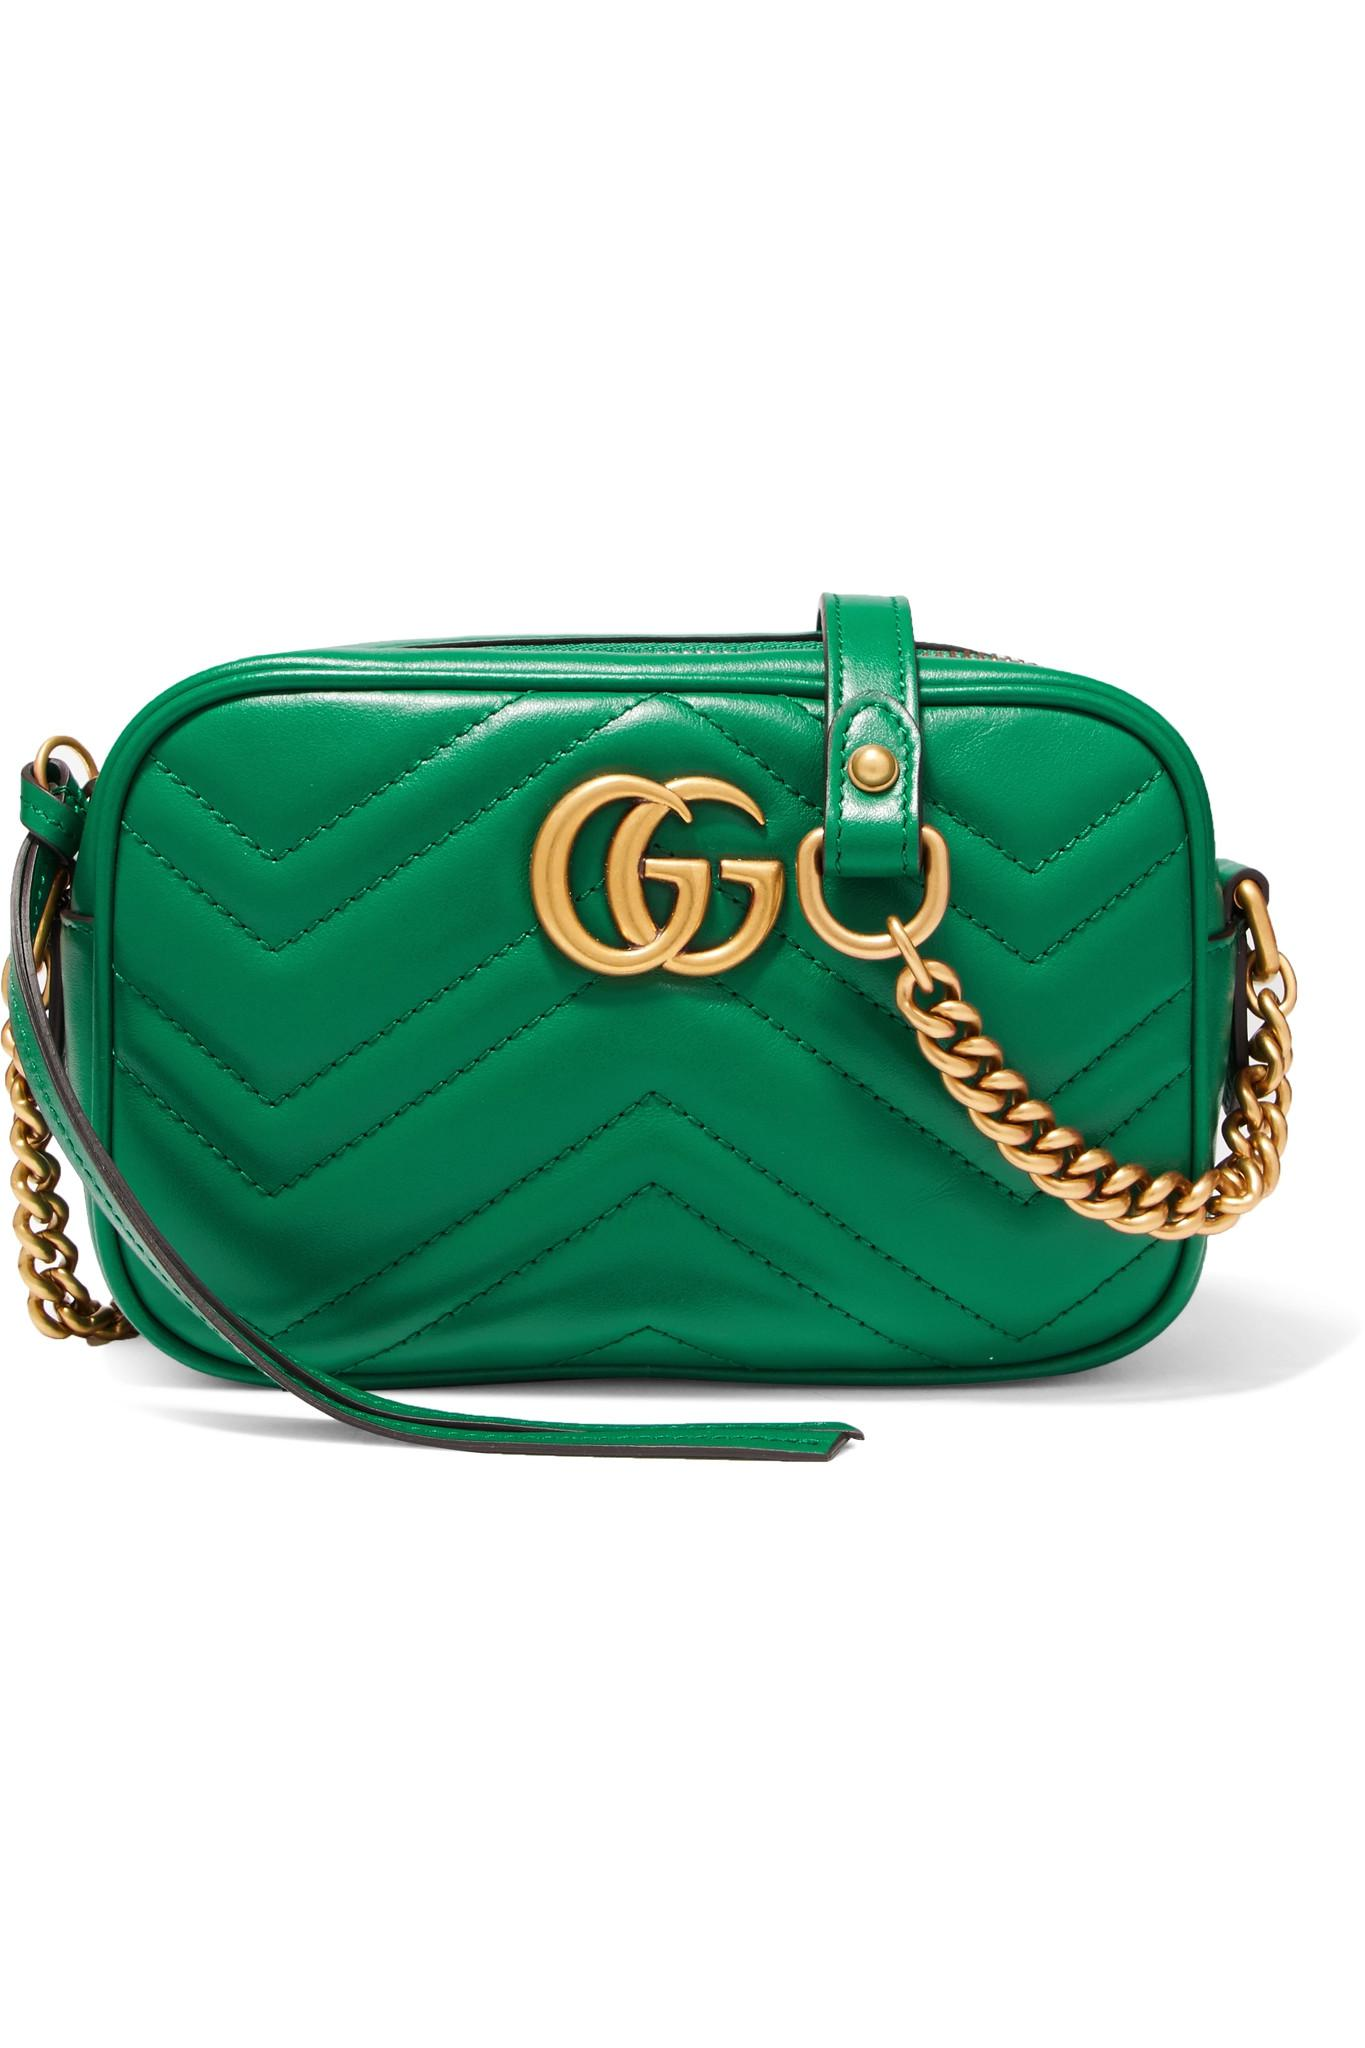 43b4df68c69e Gucci Gg Marmont Camera Mini Quilted Leather Shoulder Bag in Green ...